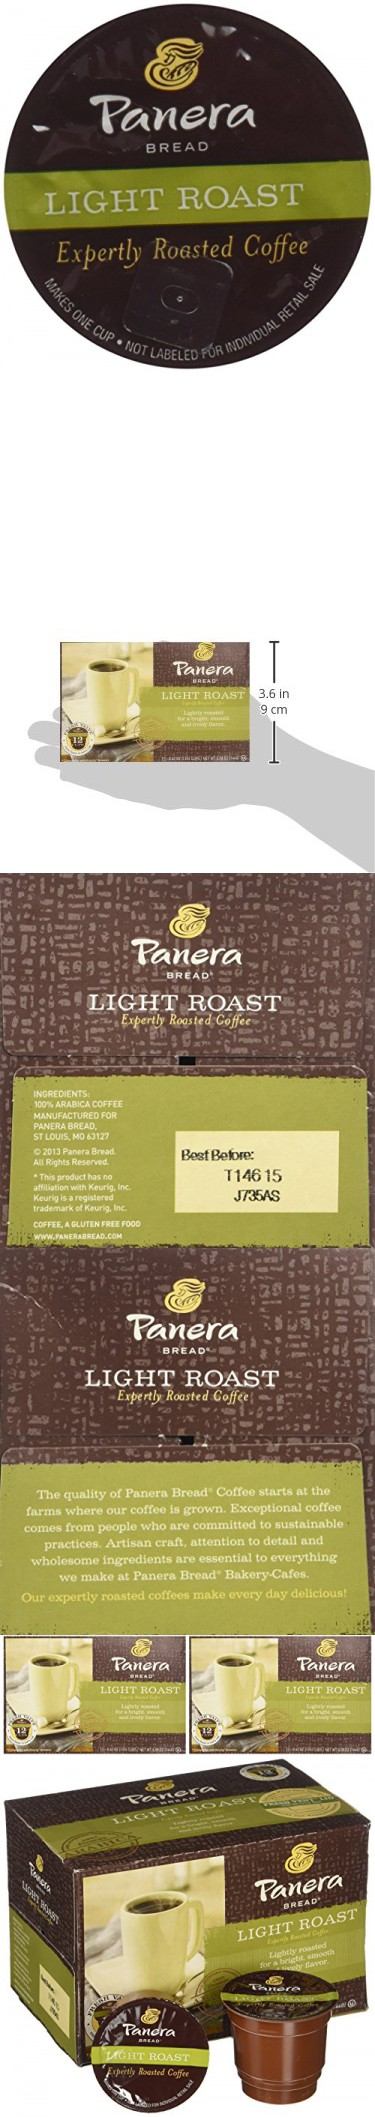 Panera Bread Coffee Box Amusing Panera Bread Kcup Single Serve Coffee 12 Count 508Oz Box Pack Design Ideas